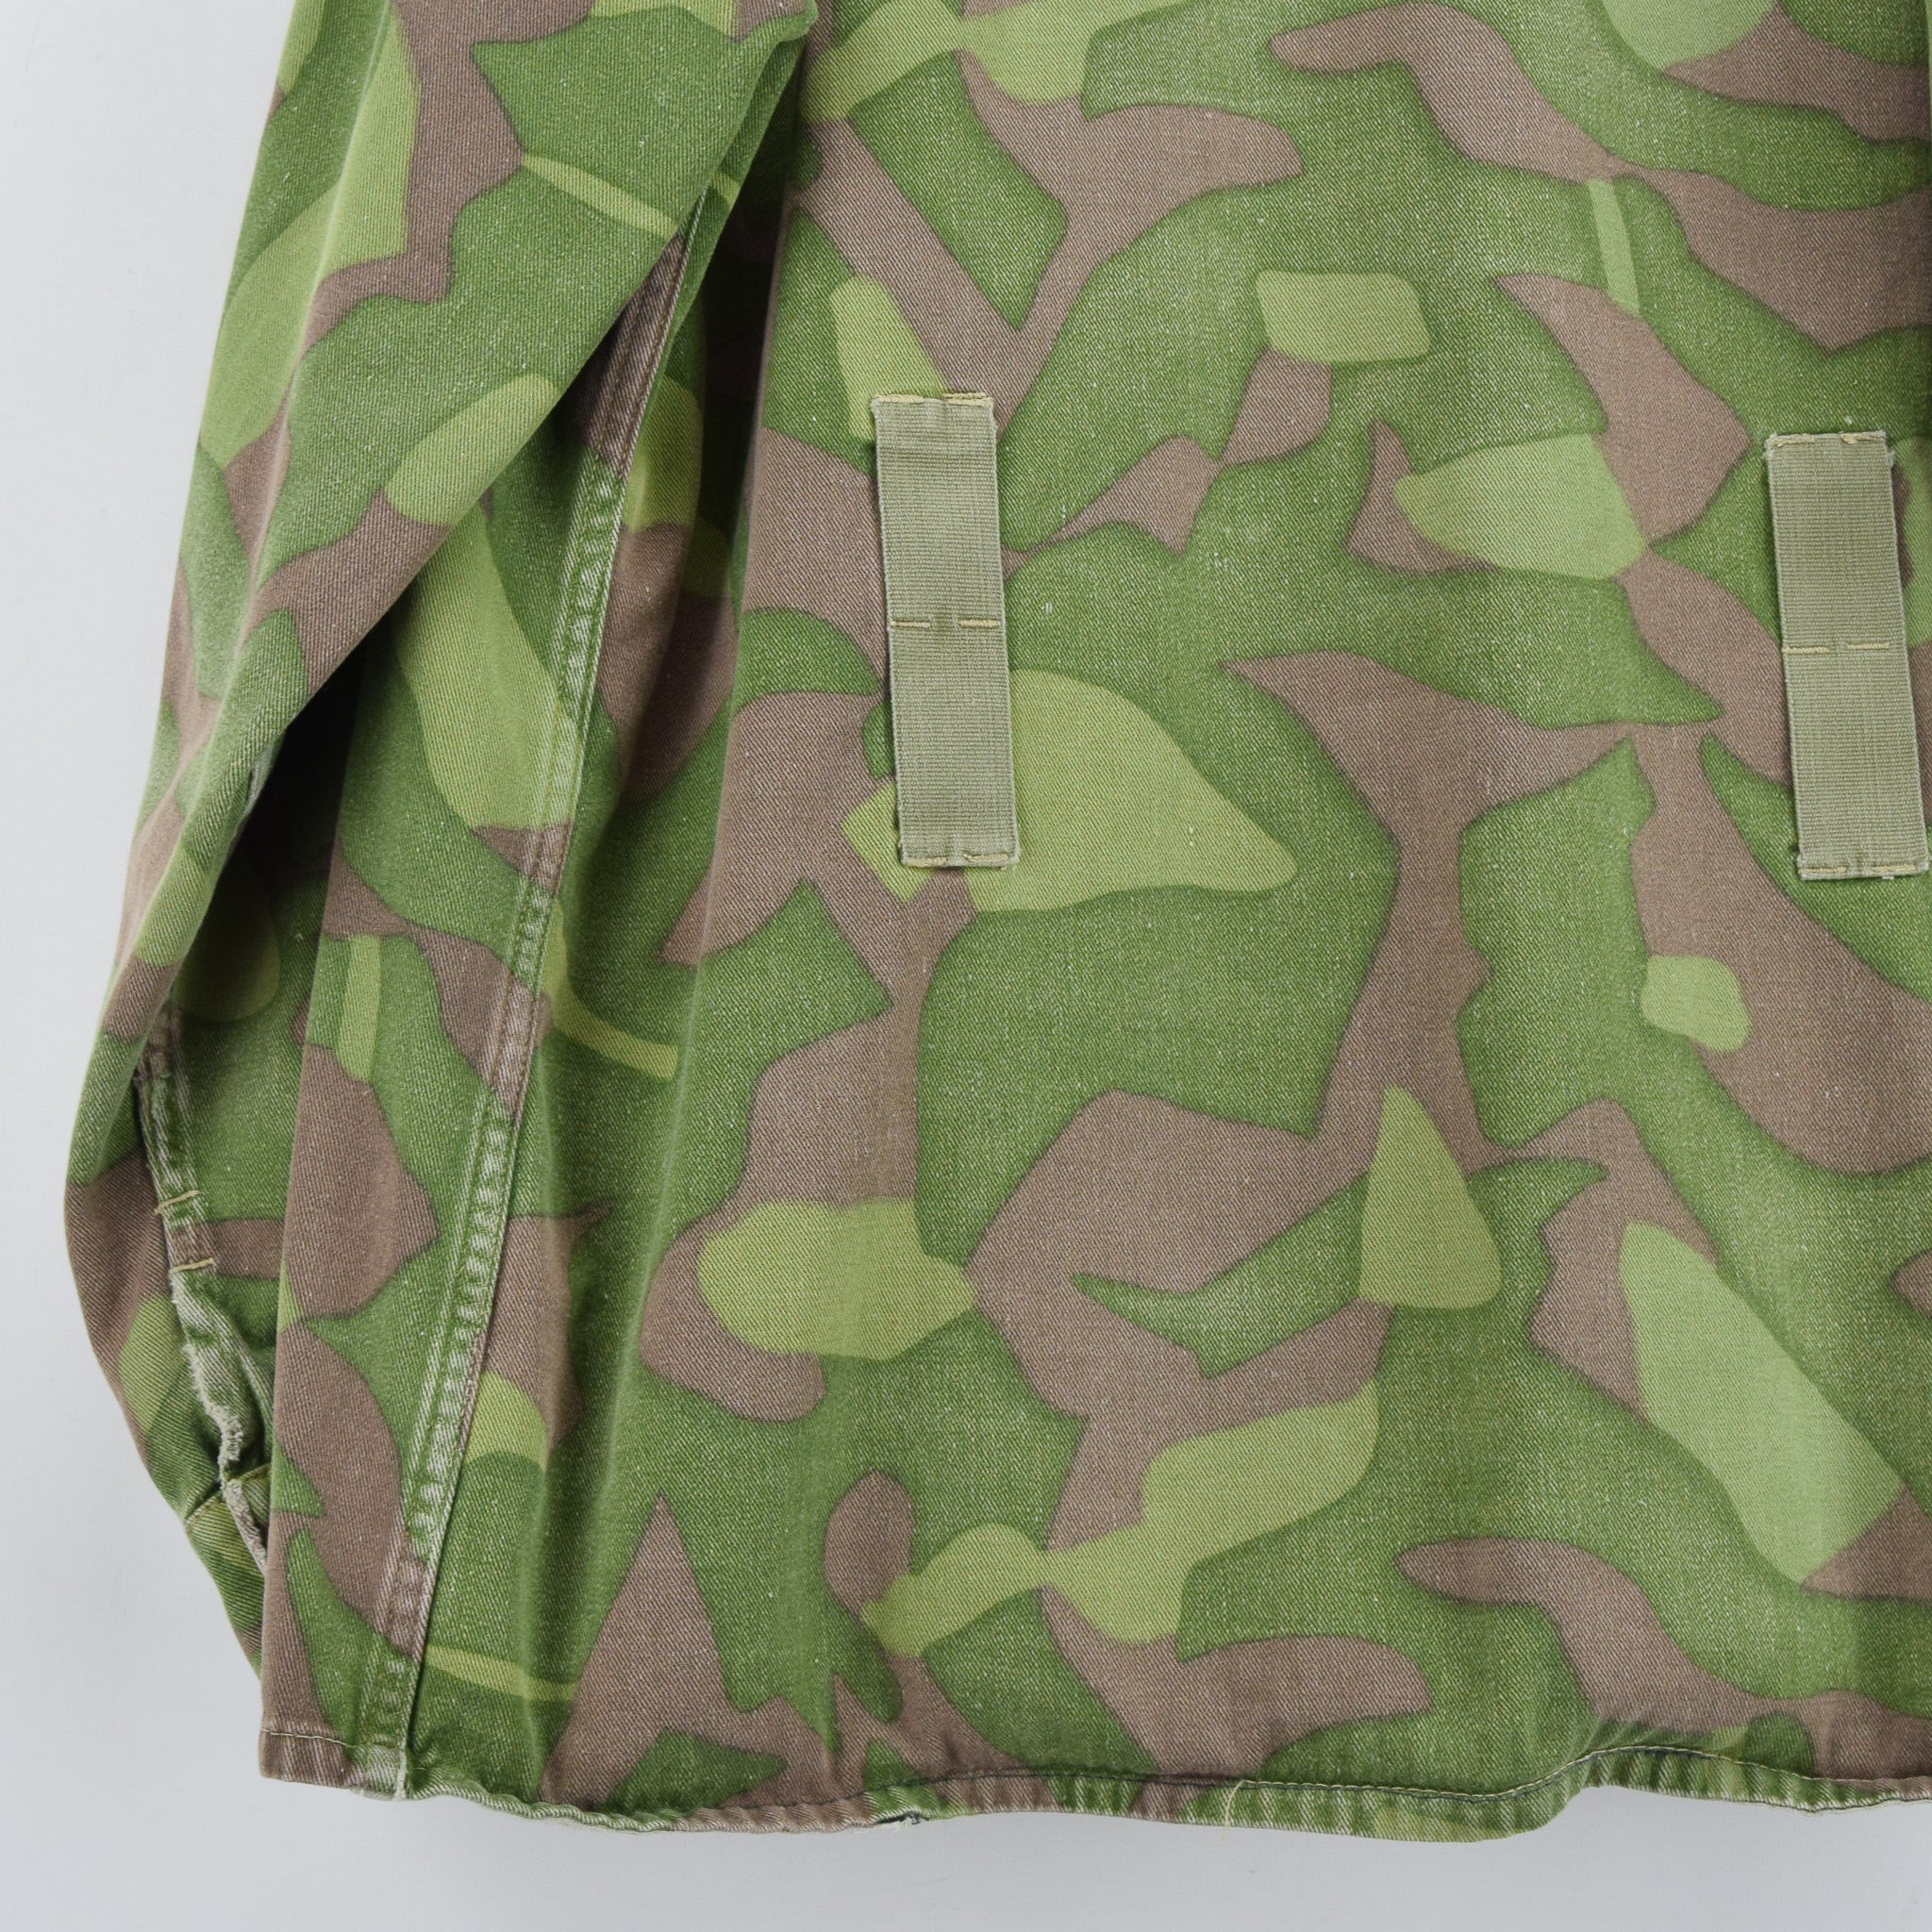 Vintage 60s Military Finnish Army Green Camo Mountain Field Jacket XL back hem